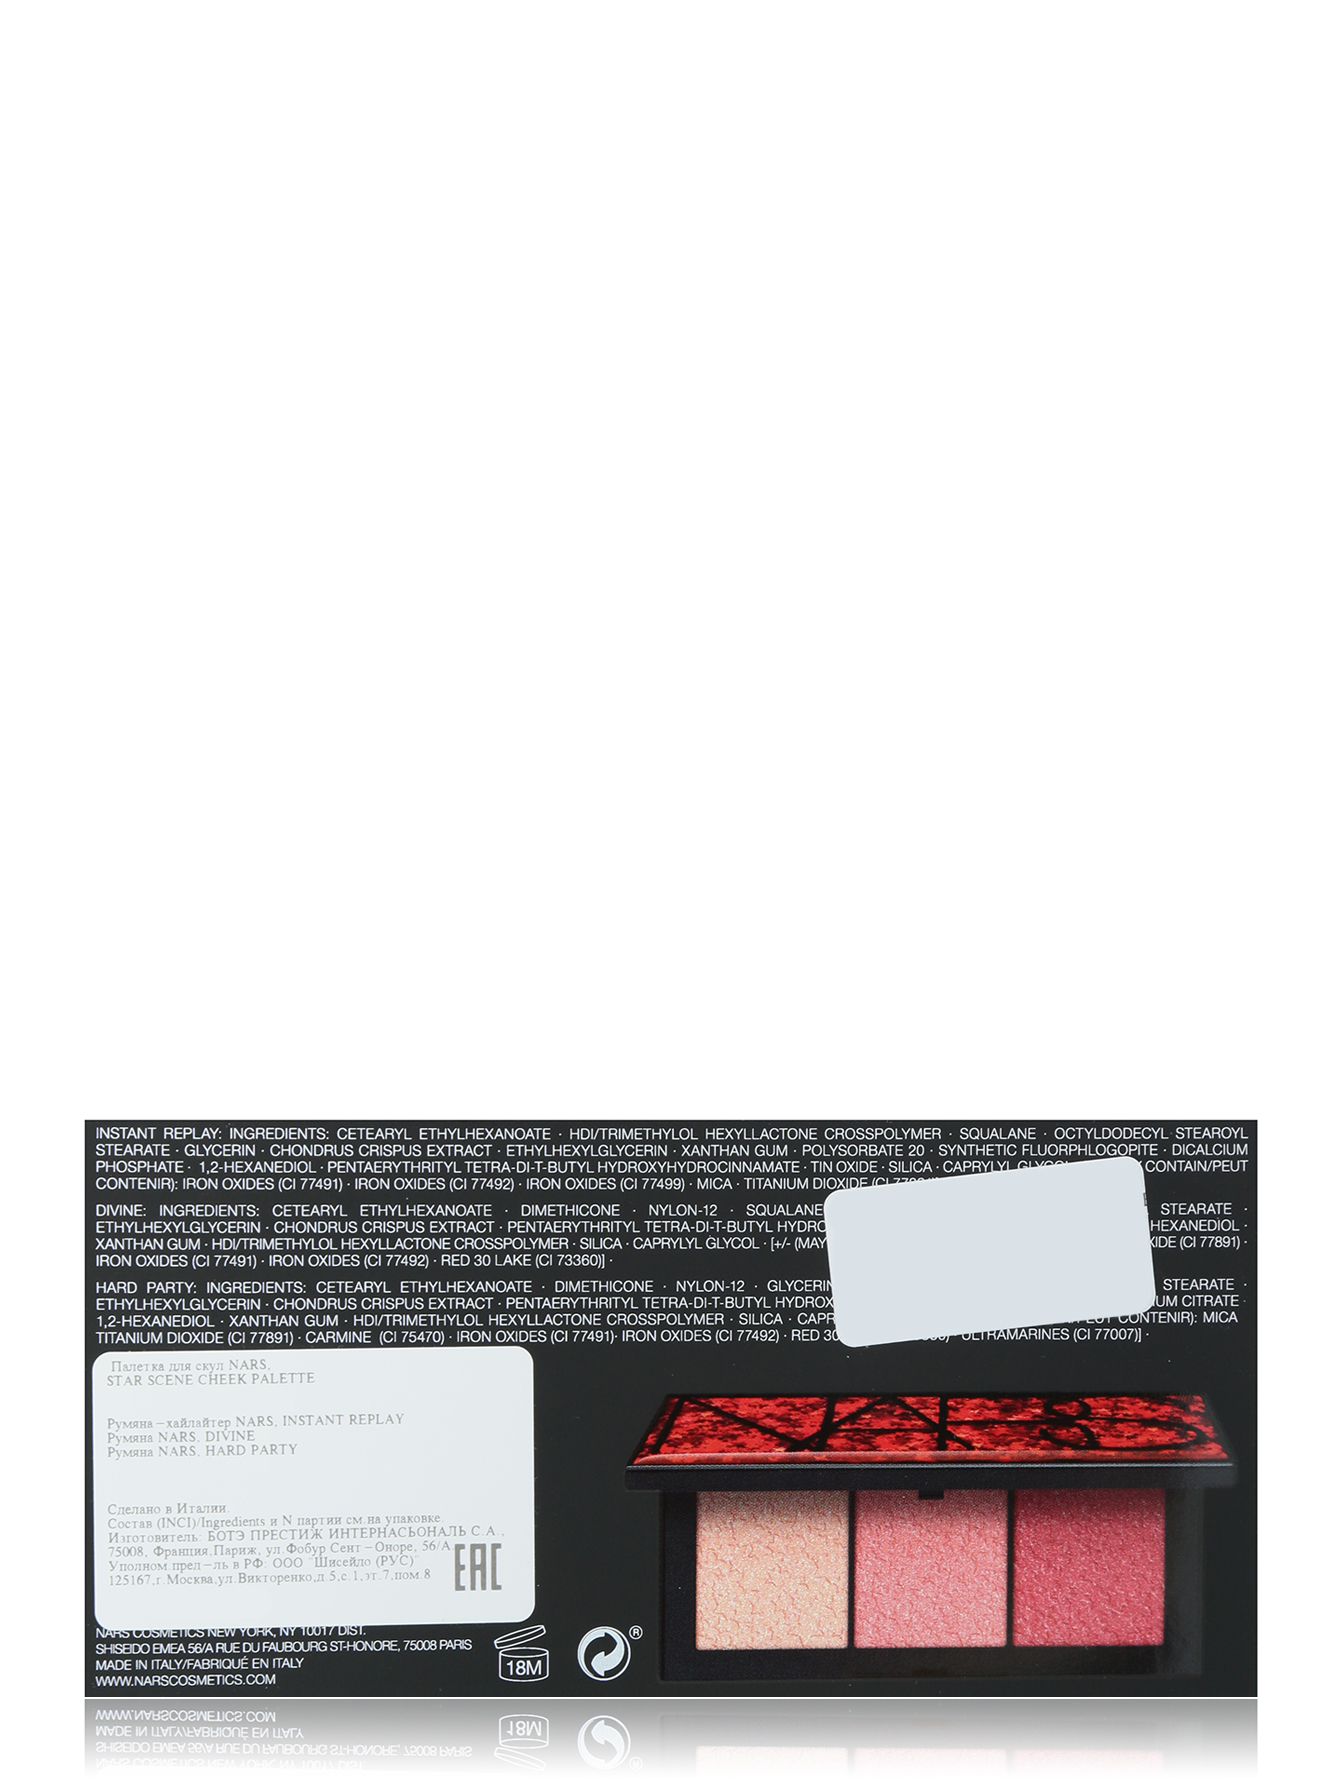 Палетка для скул STAR SCENE CHEEK PALETTE 3,5 г х 3 - Обтравка1